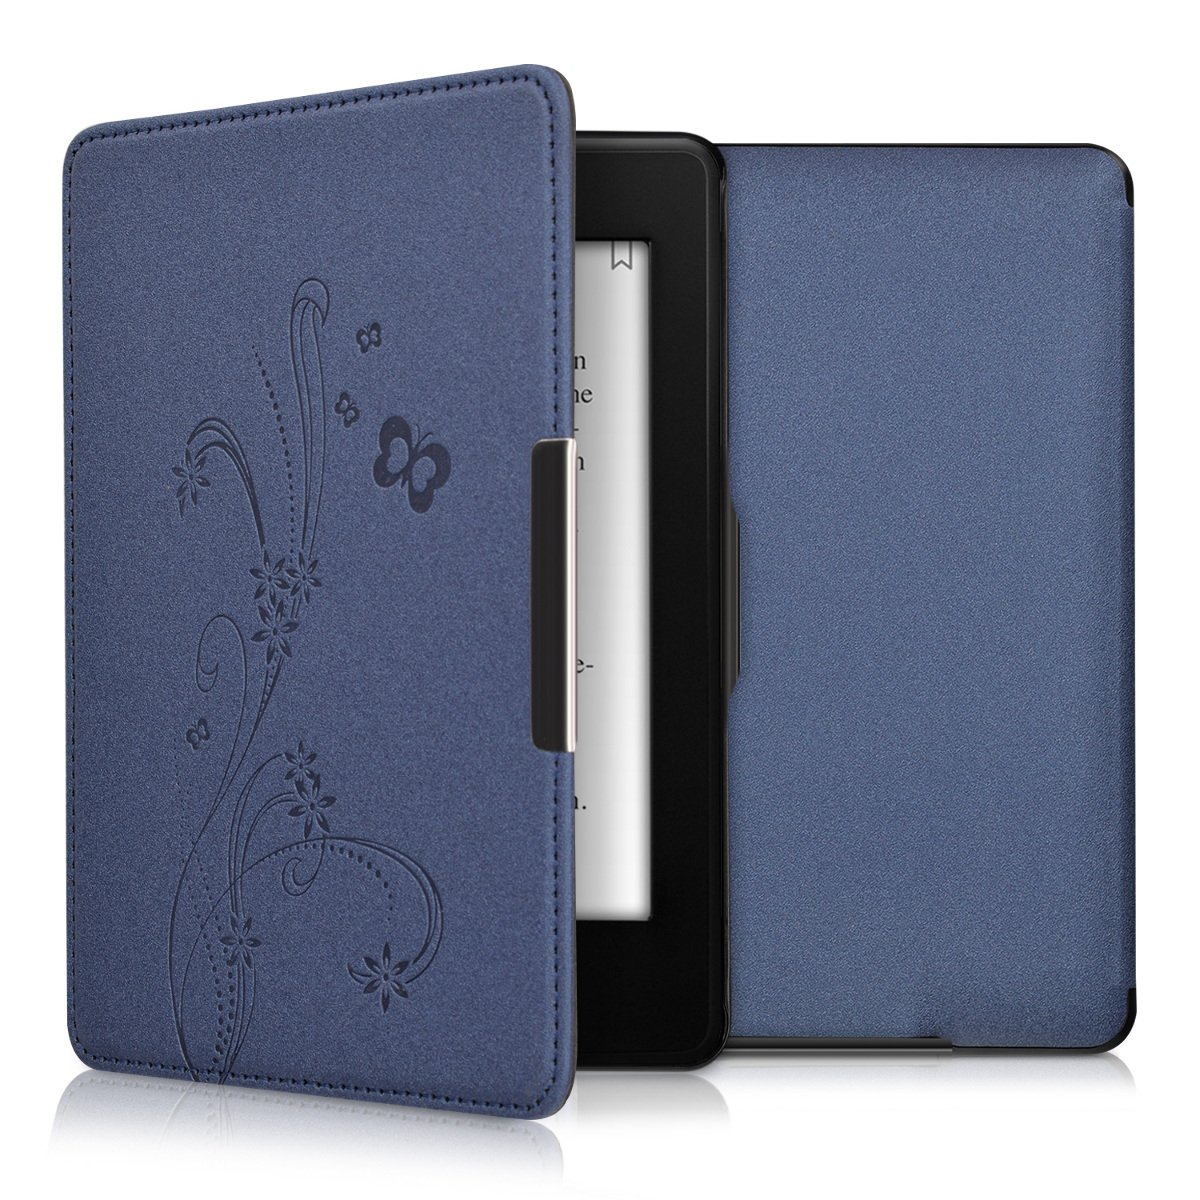 kwmobile Case for Amazon Kindle Paperwhite - Book Style PU Leather Protective e-Reader Cover Folio Case - dark blue